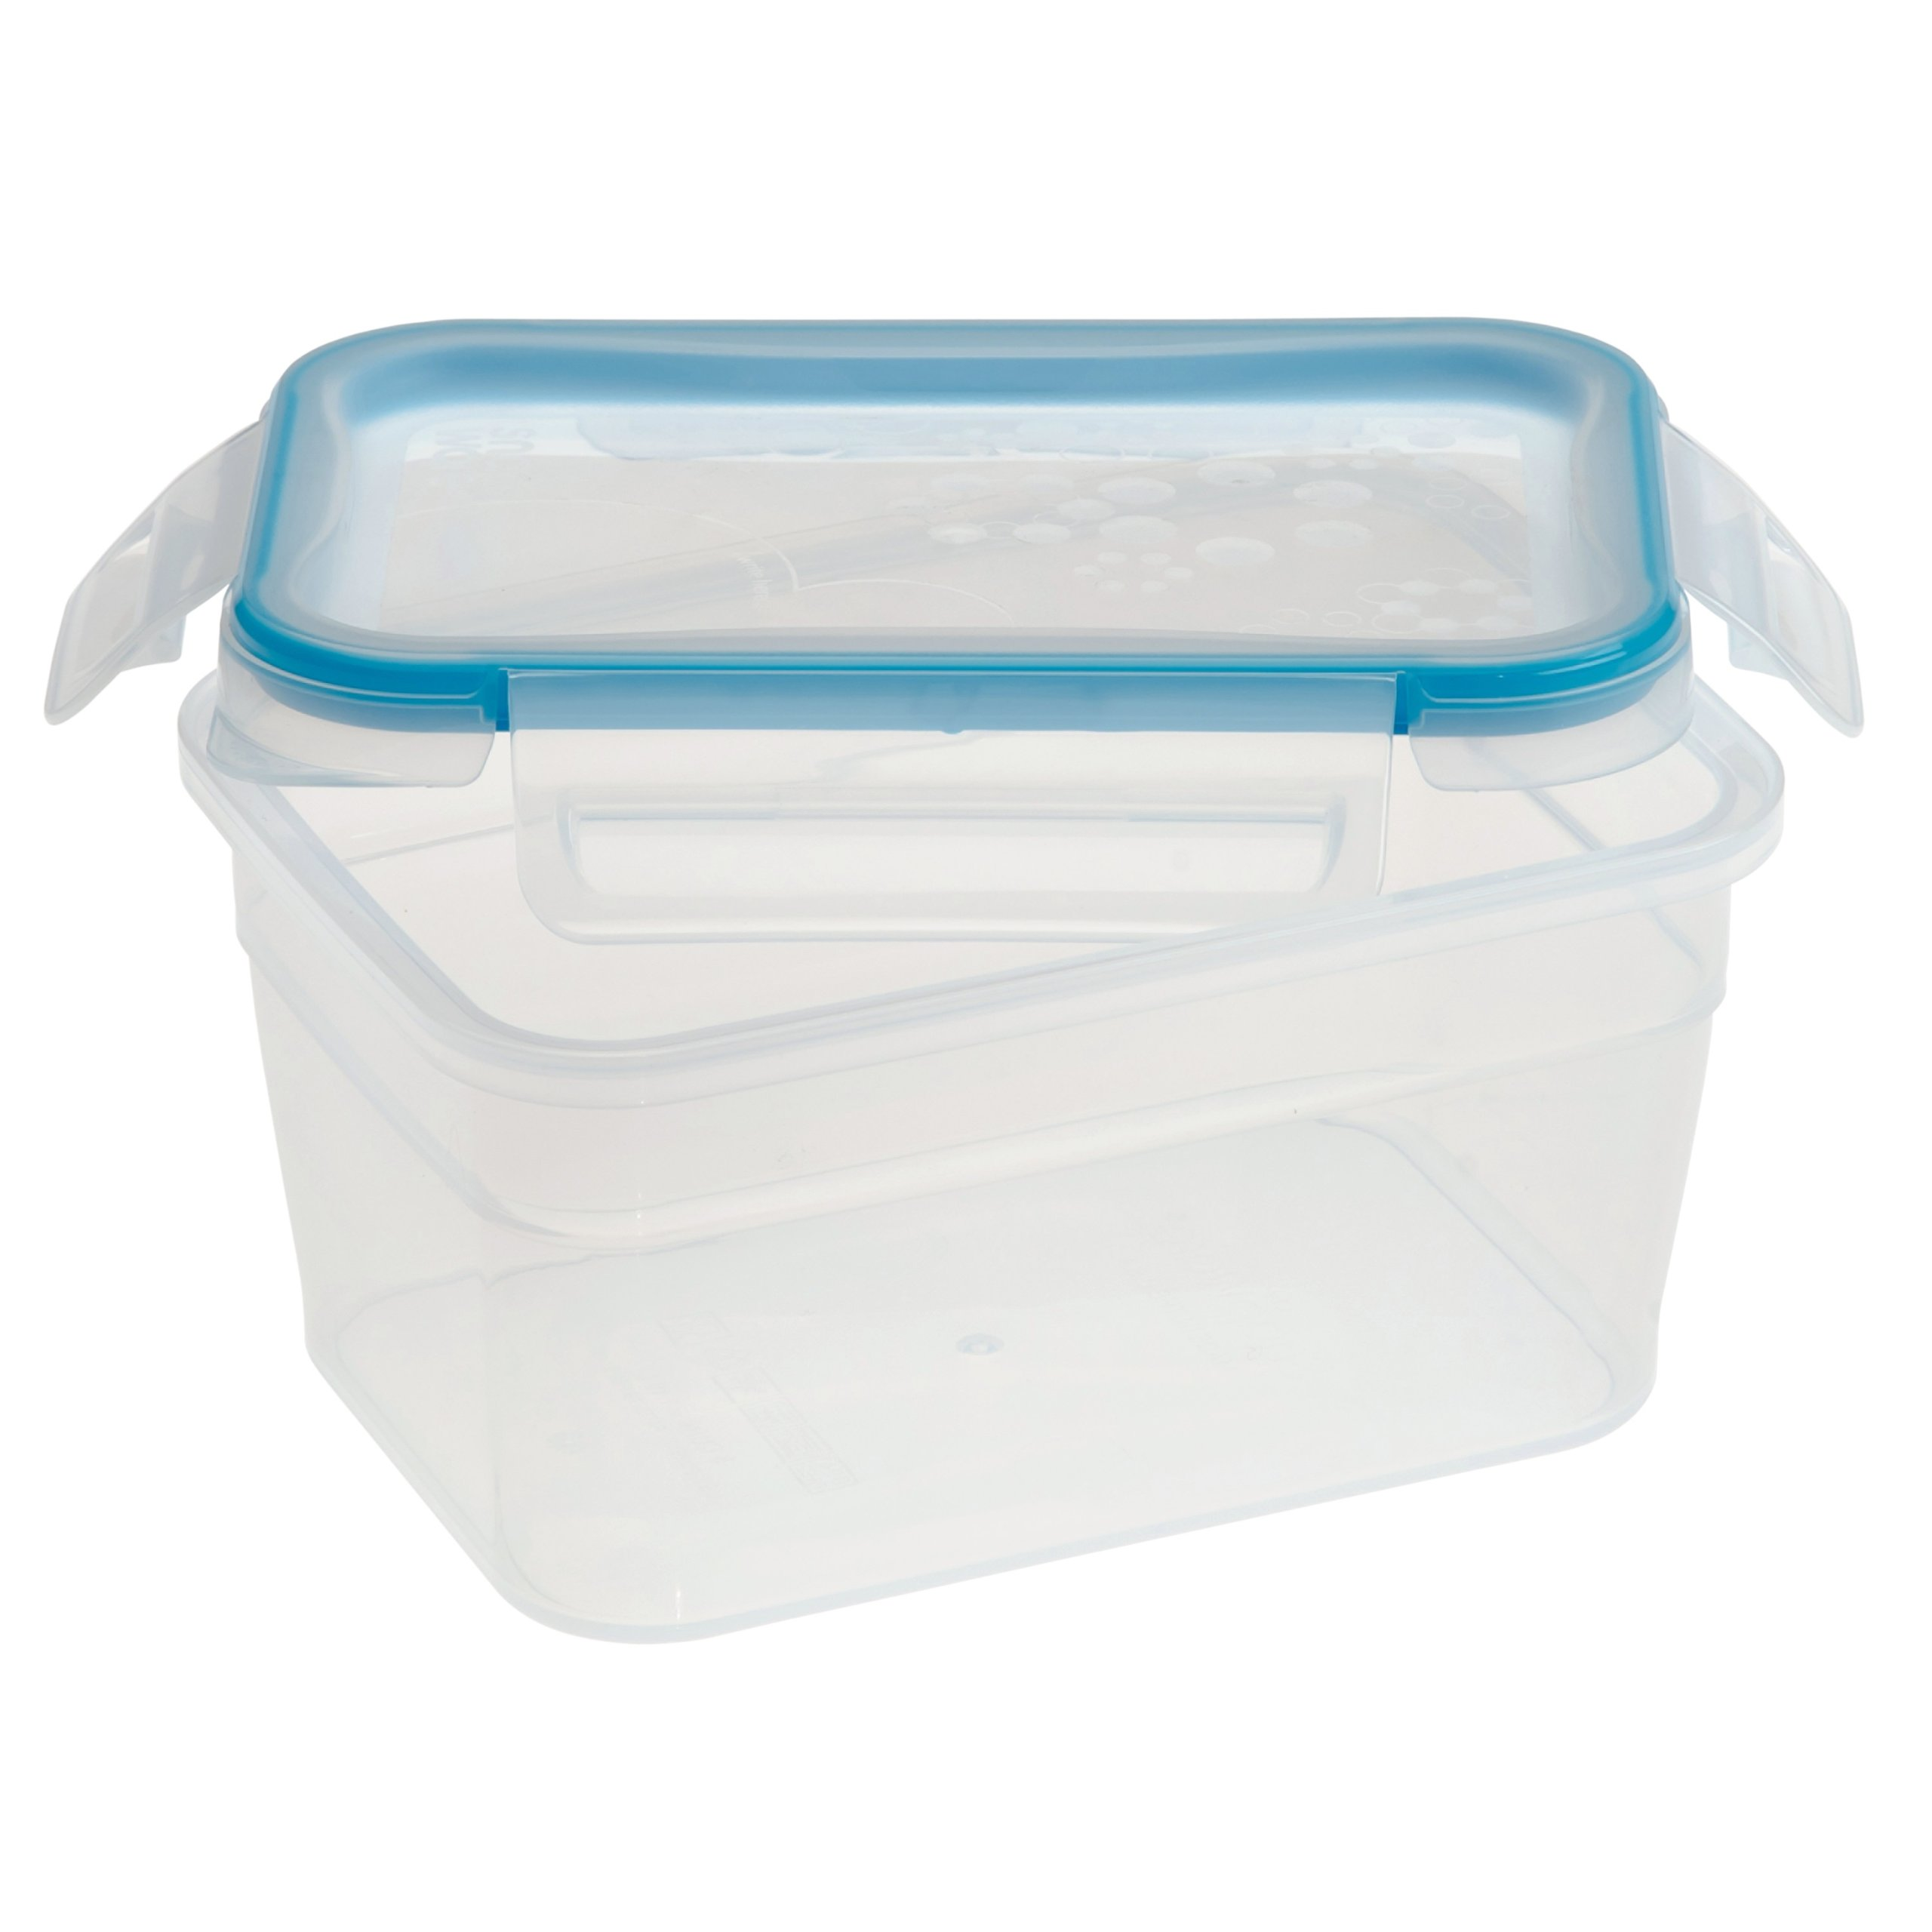 Snapware 5 Cup Total Solution Rectangle Food Storage Container